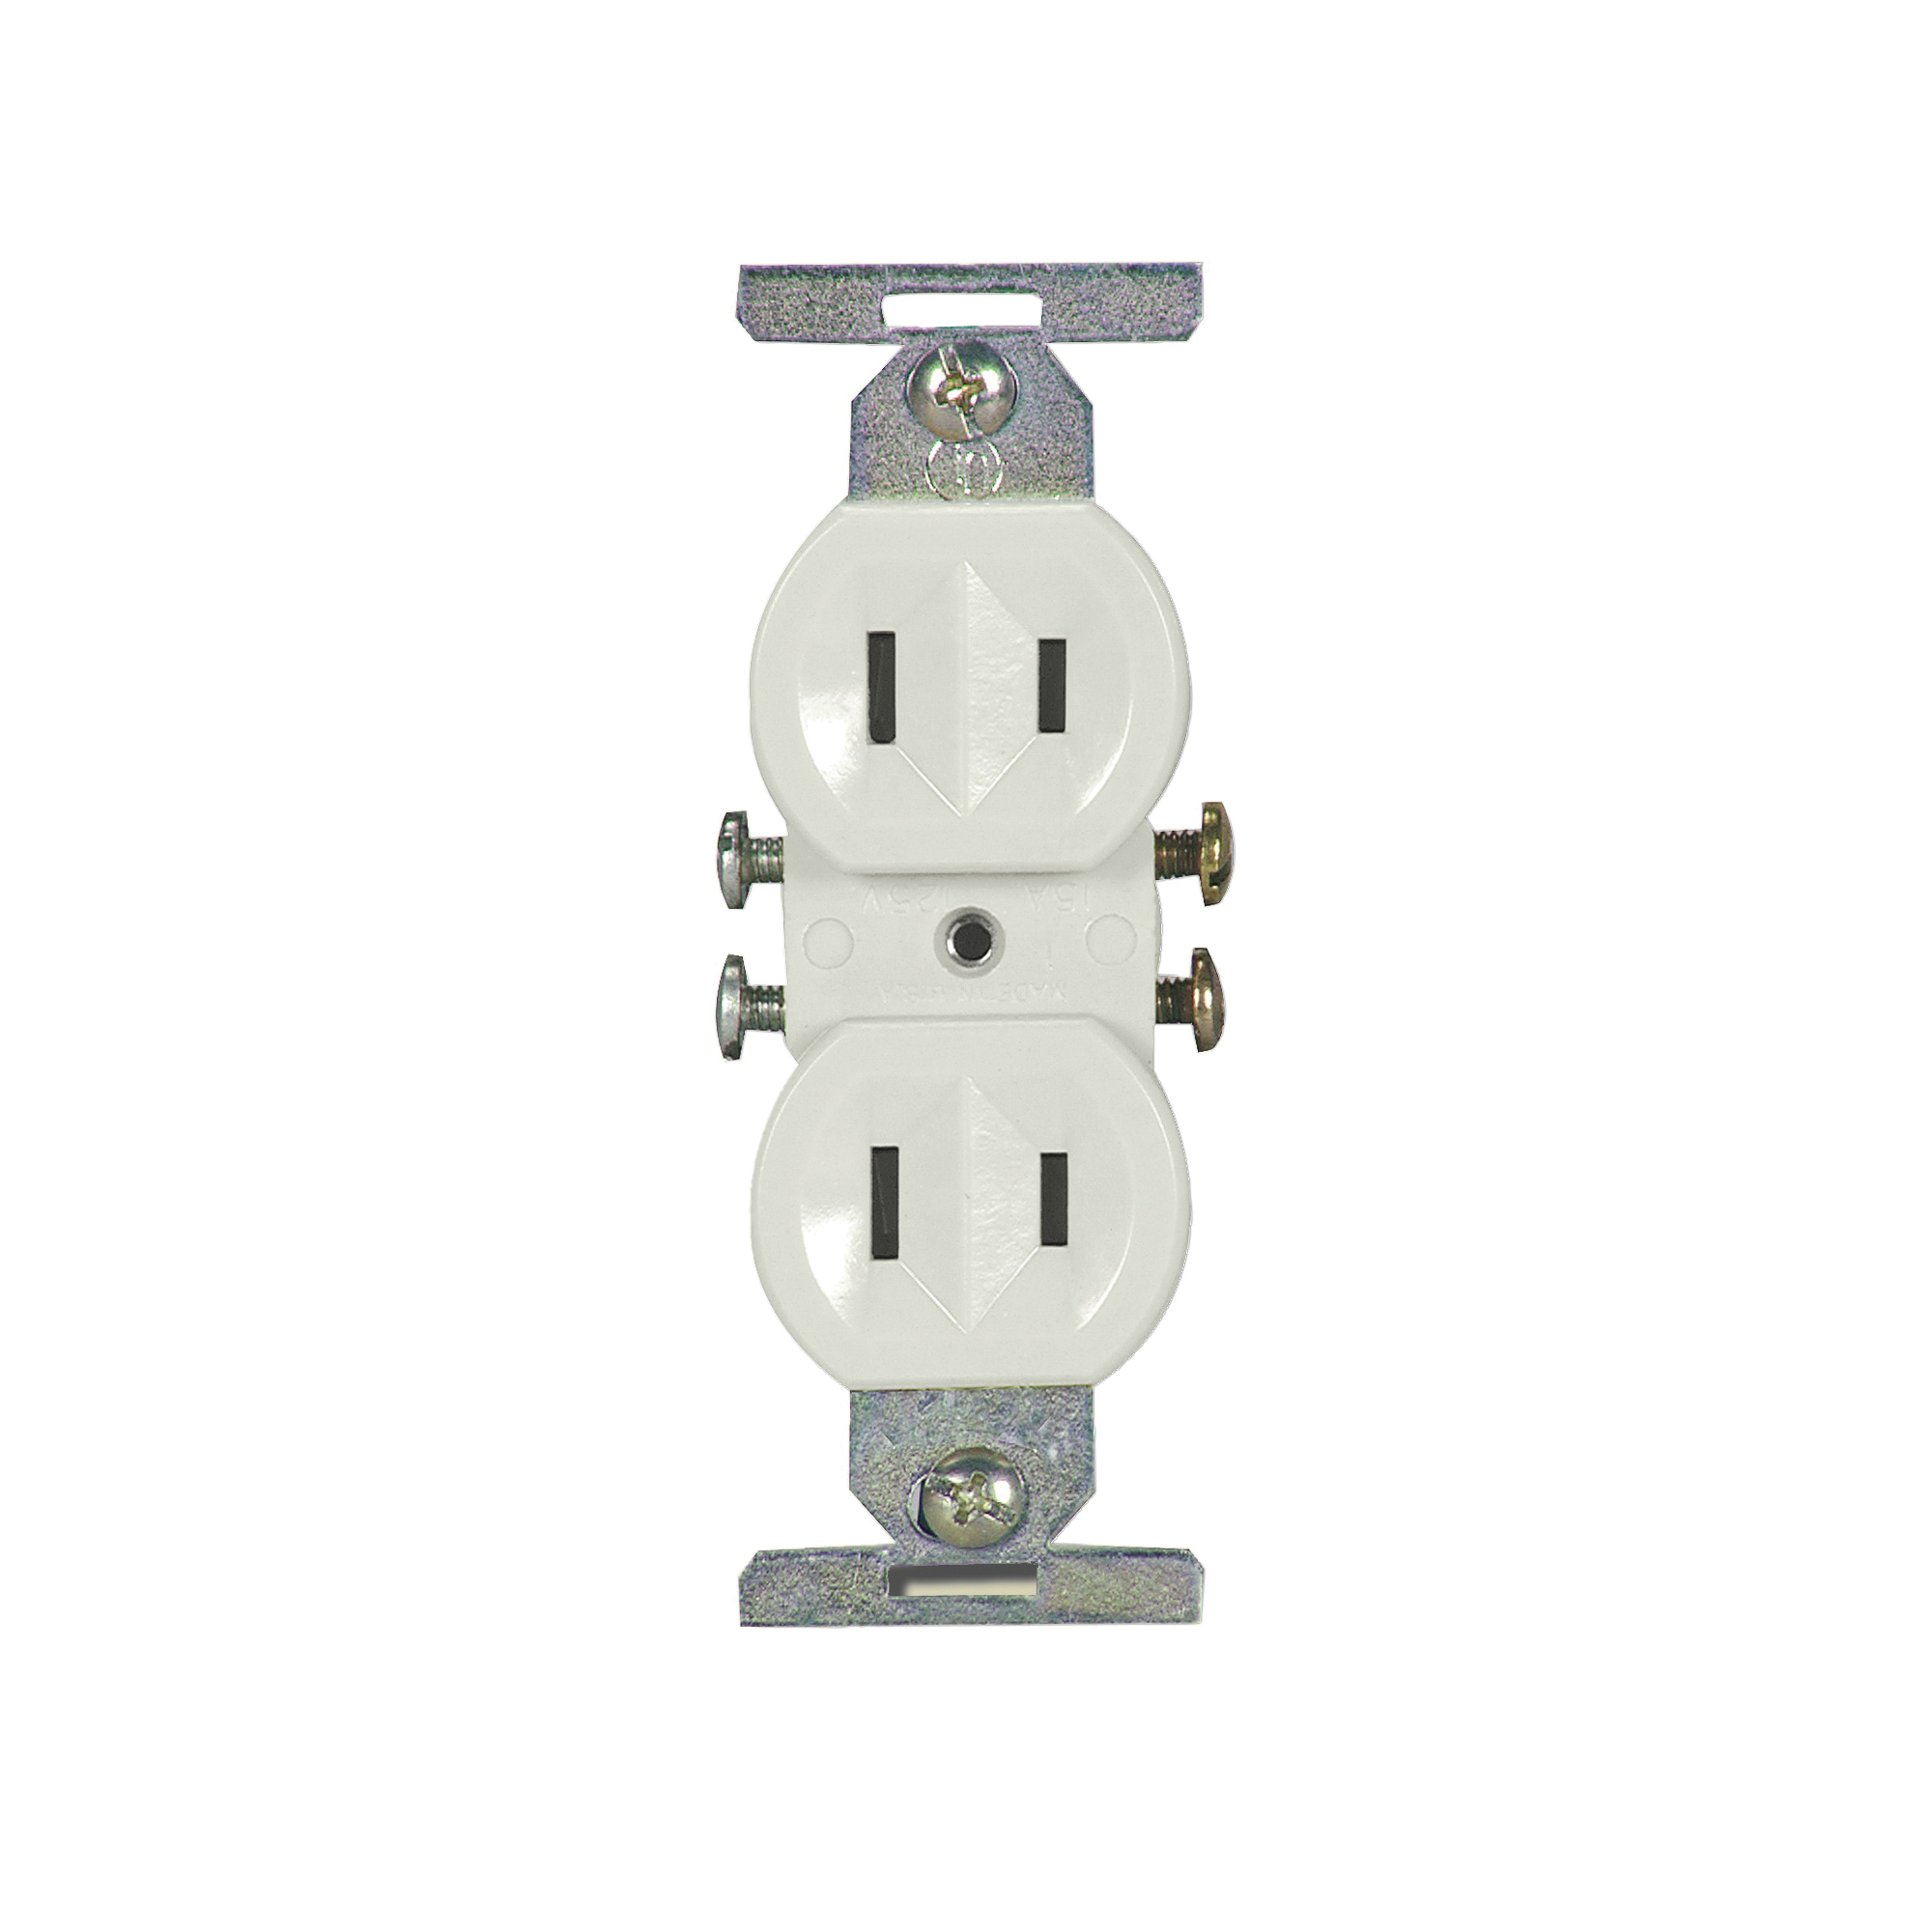 Picture of Eaton Wiring Devices 736W-BOX Duplex Receptacle, 2-Pole, 15 A, 125 V, Side Wiring, NEMA: 1-15R, White